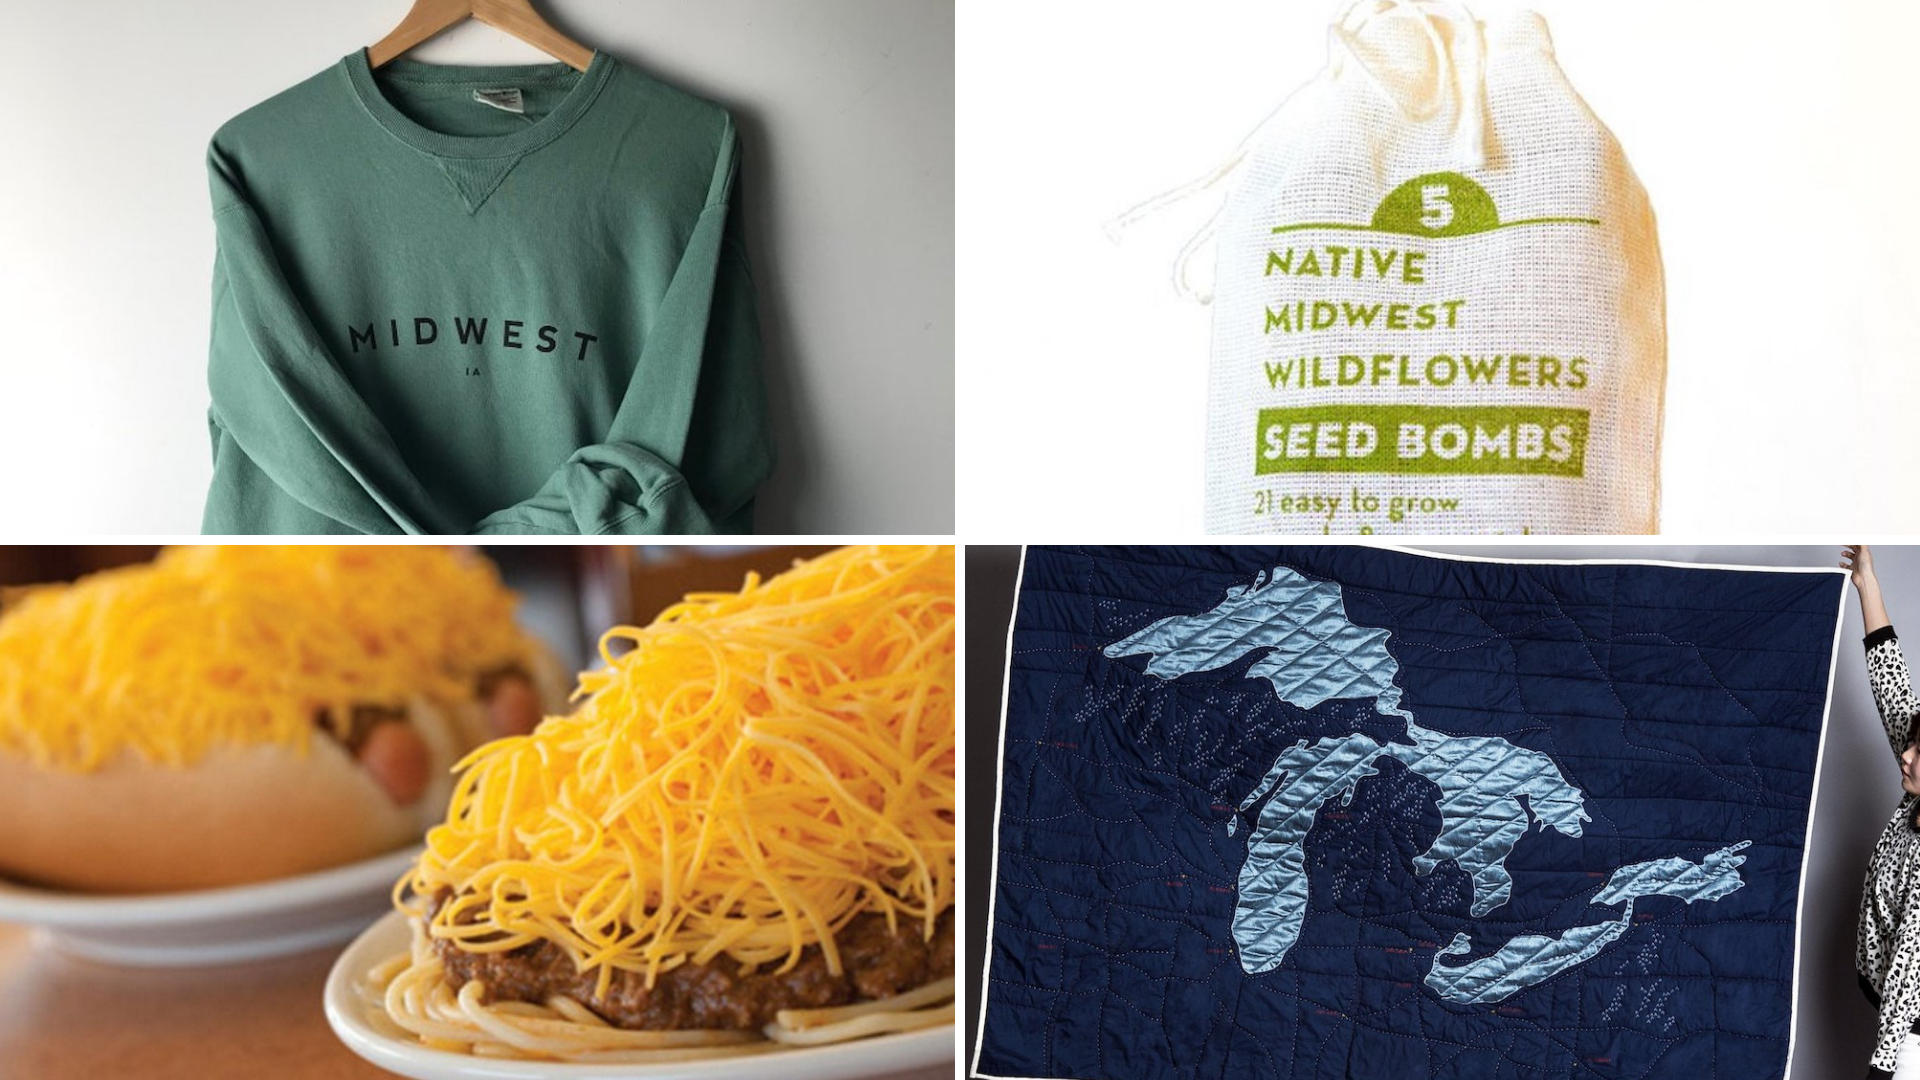 Looking for gifts for the Midwesterner in your life? Discover ideas that are sure to delight them this holiday season. #GiftGuide #Midwest #MidwestGifts